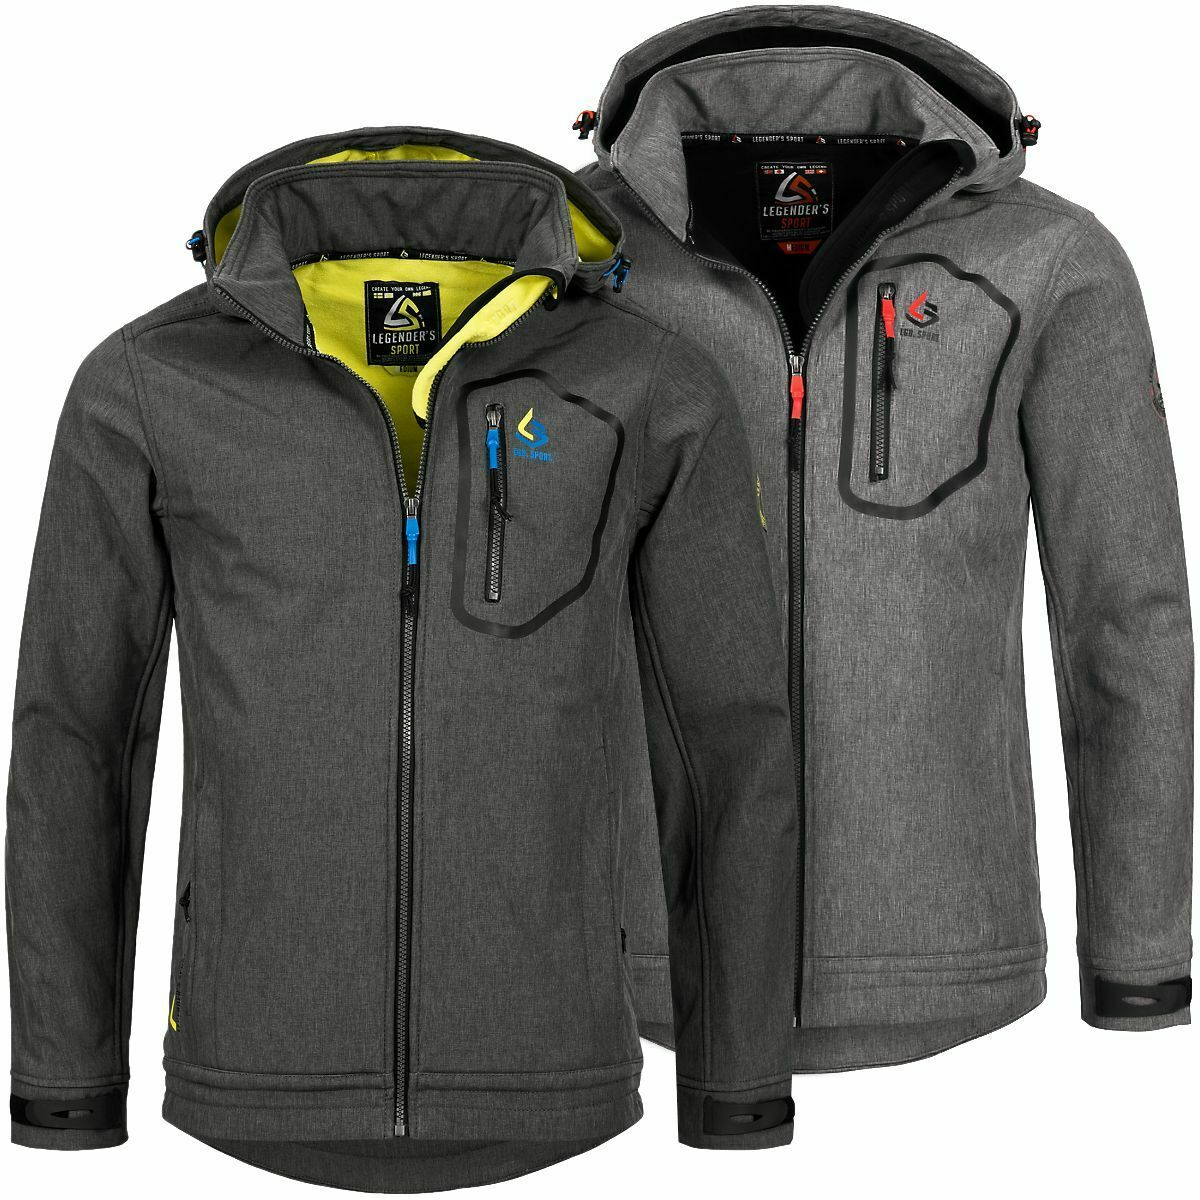 Herren Softshelljacke Jacke Regenjacke Funktionsjacke Legender´s Emotion